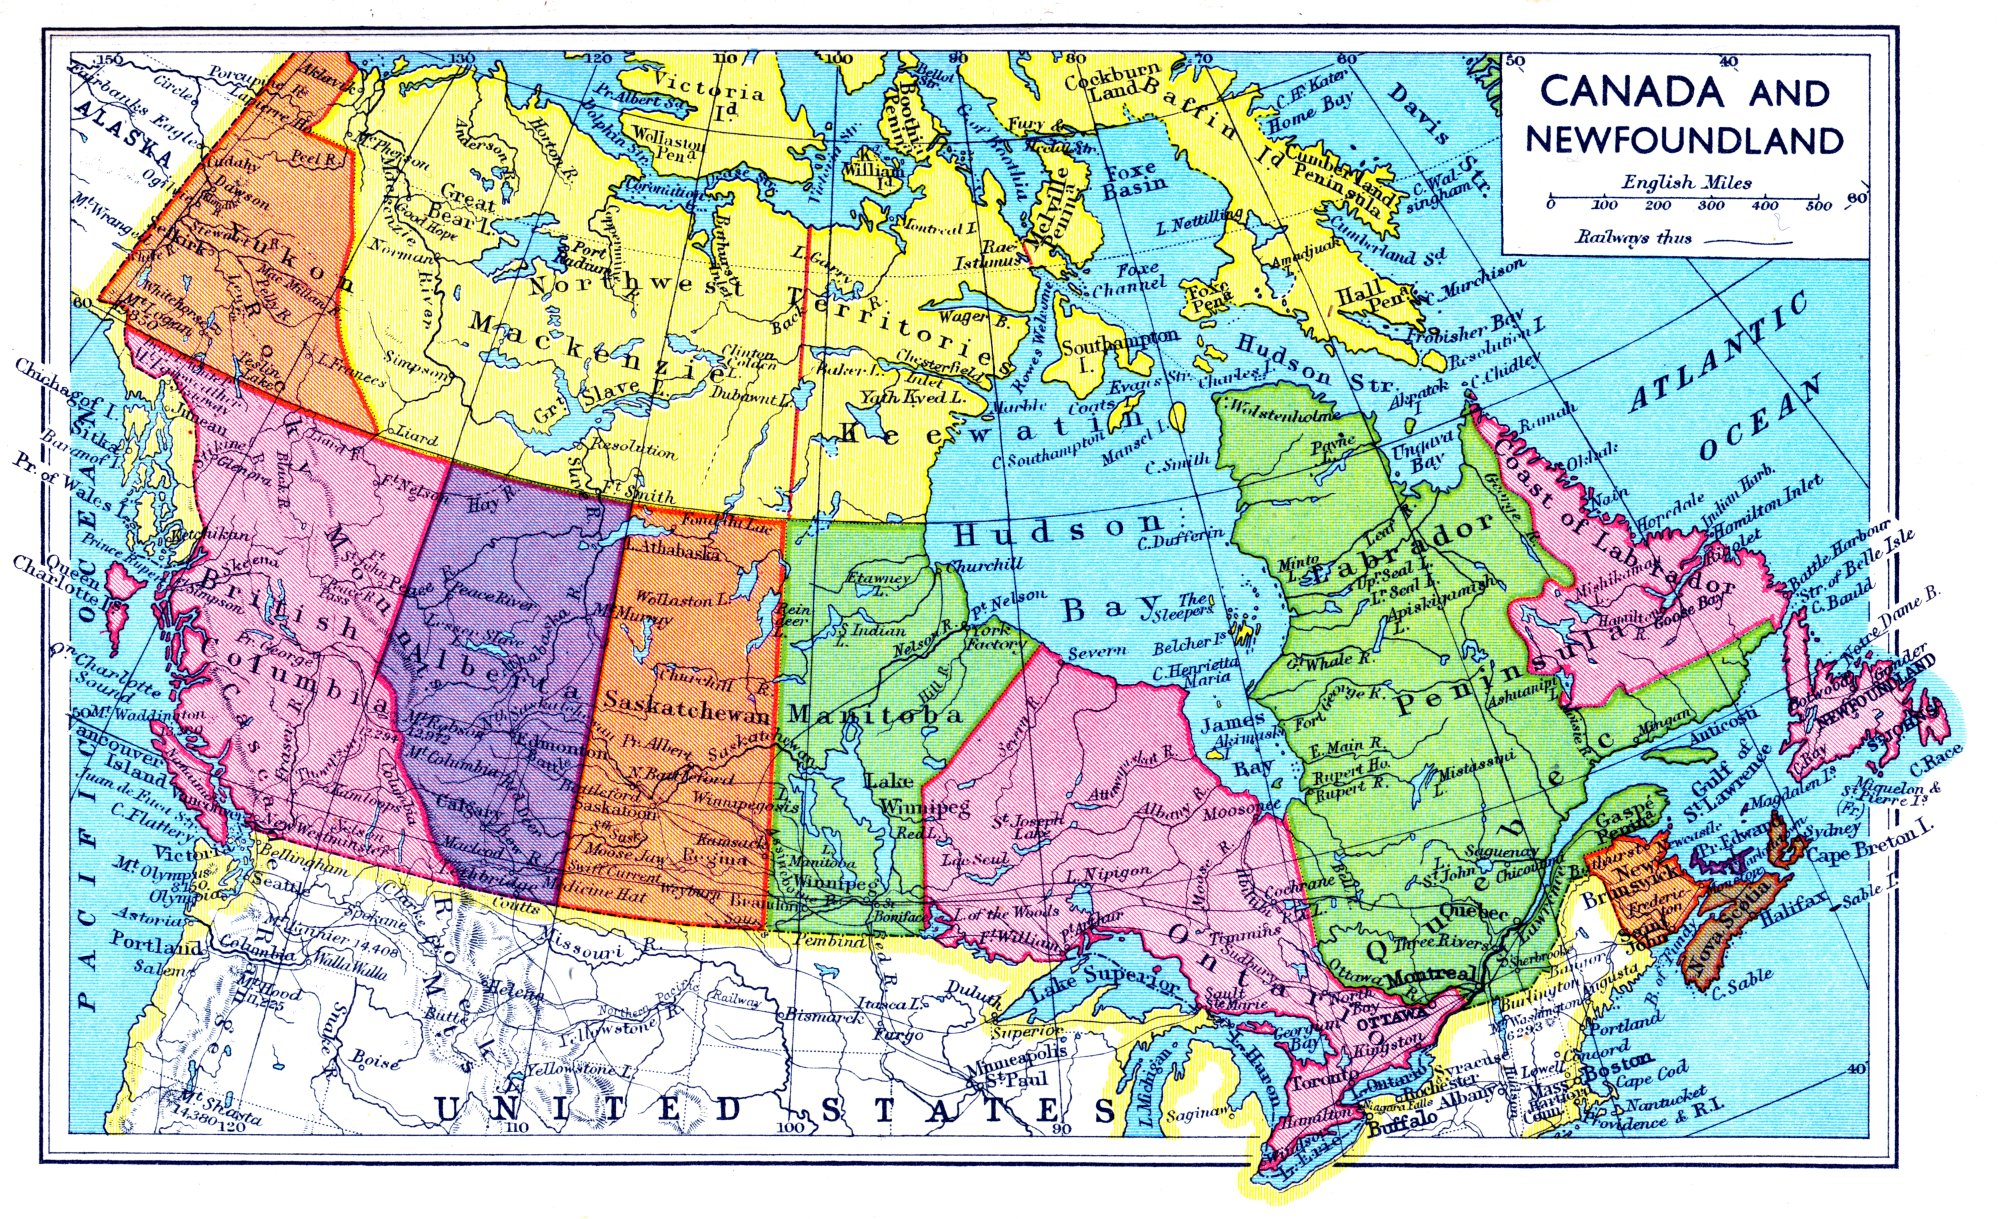 Canadian Open Data and Free Geospatial Data - Canadian GIS & Geomatics